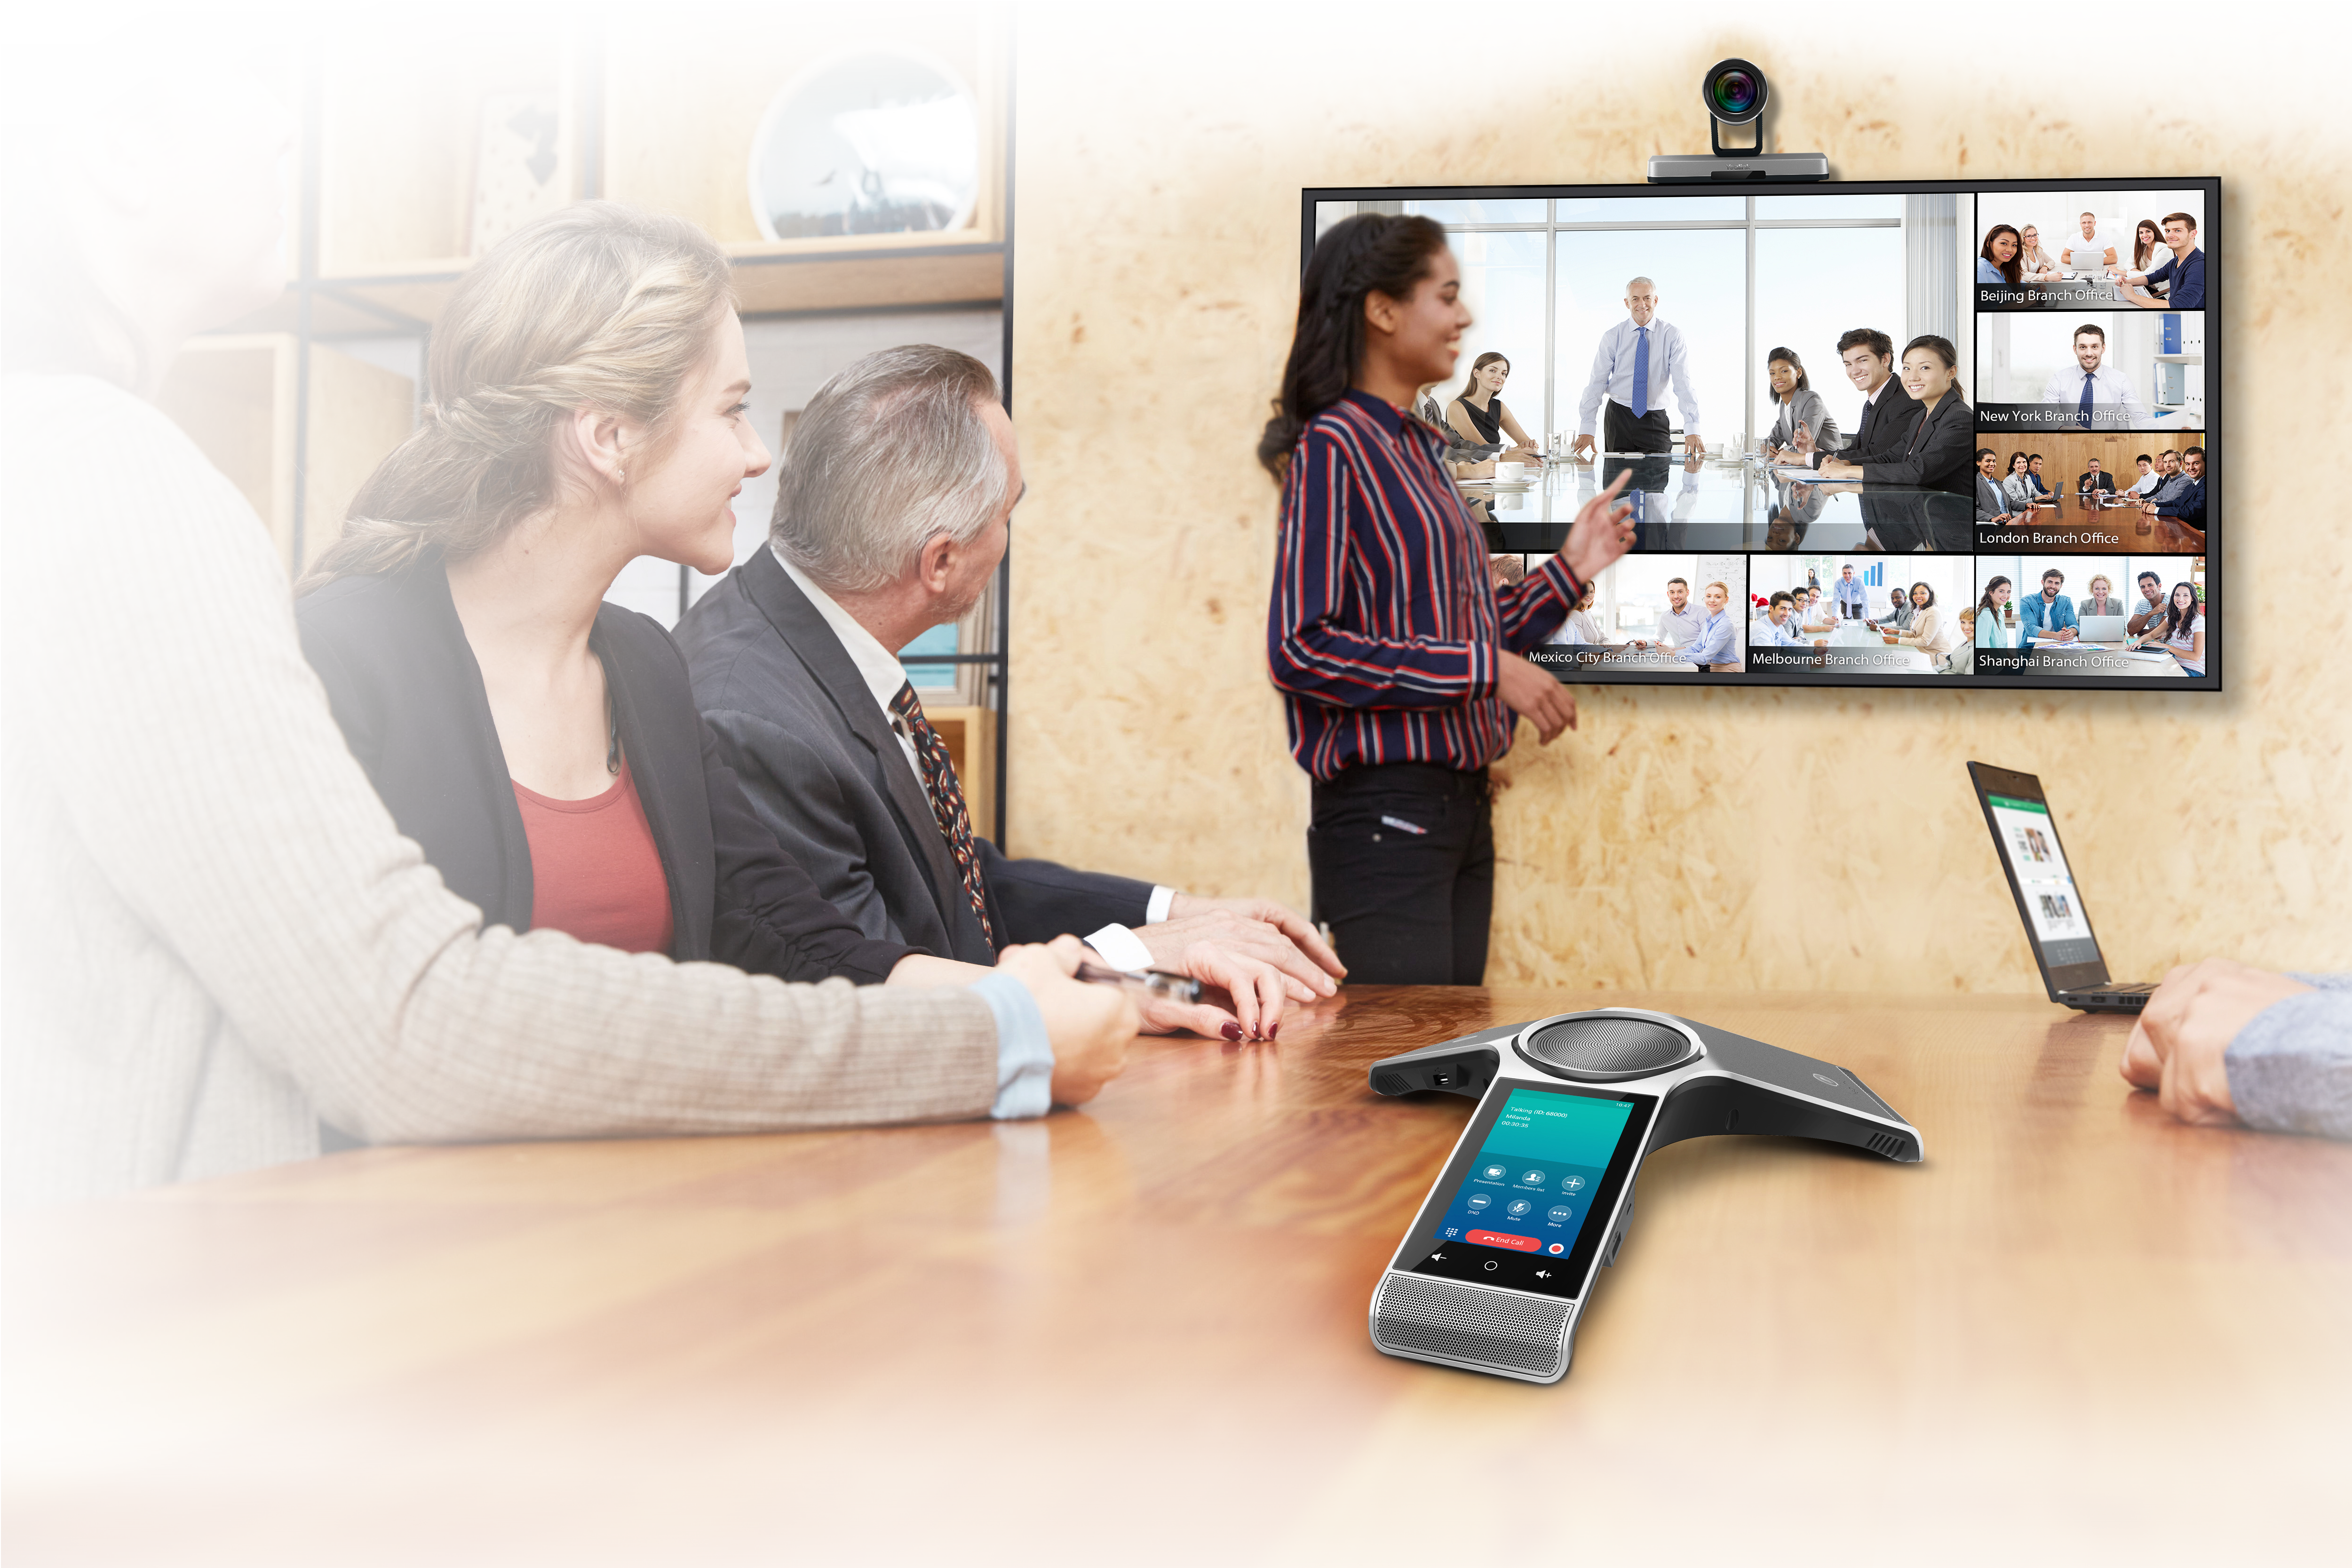 Yealink VC800 Video Conference Scenario